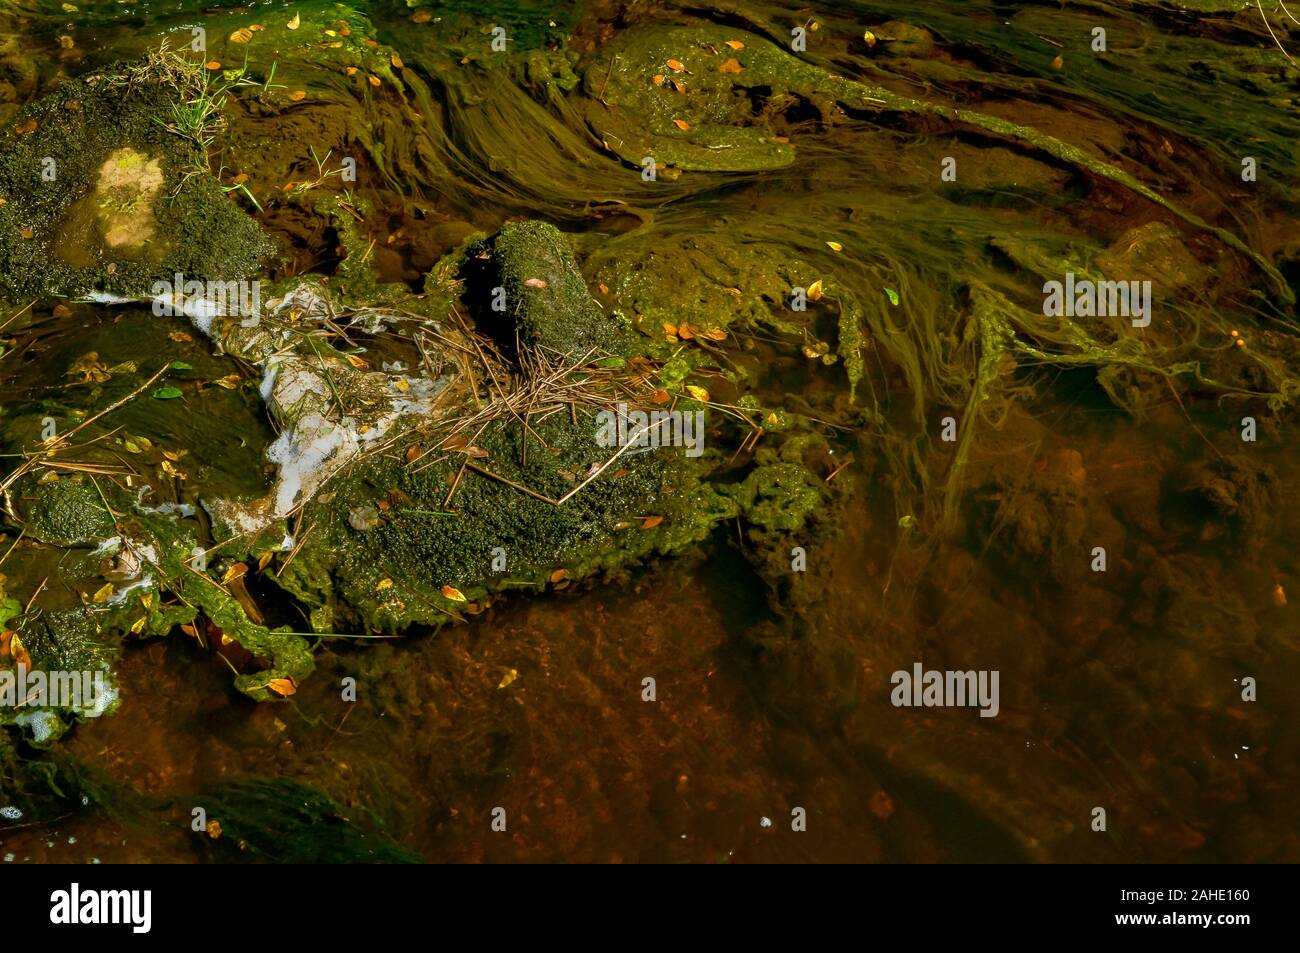 Swirling patterns of foam on the surface of a stream in bright sunshine with water weeds forming contrasting swirls beneath Stock Photo